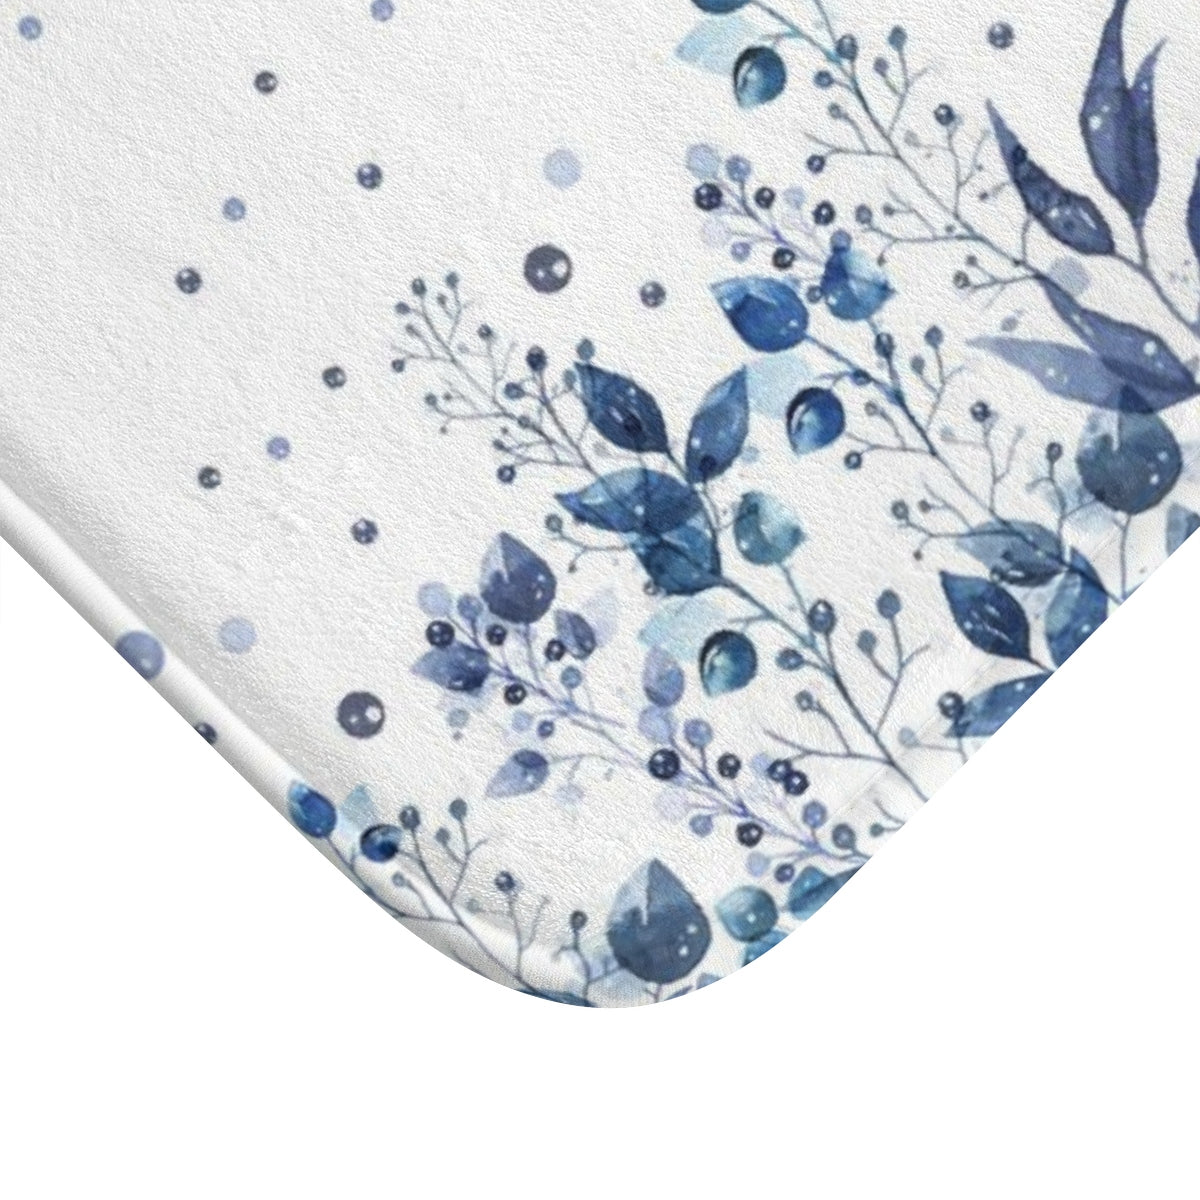 The corner of blue and white bath mat - Liz Kapiloto Art & Design